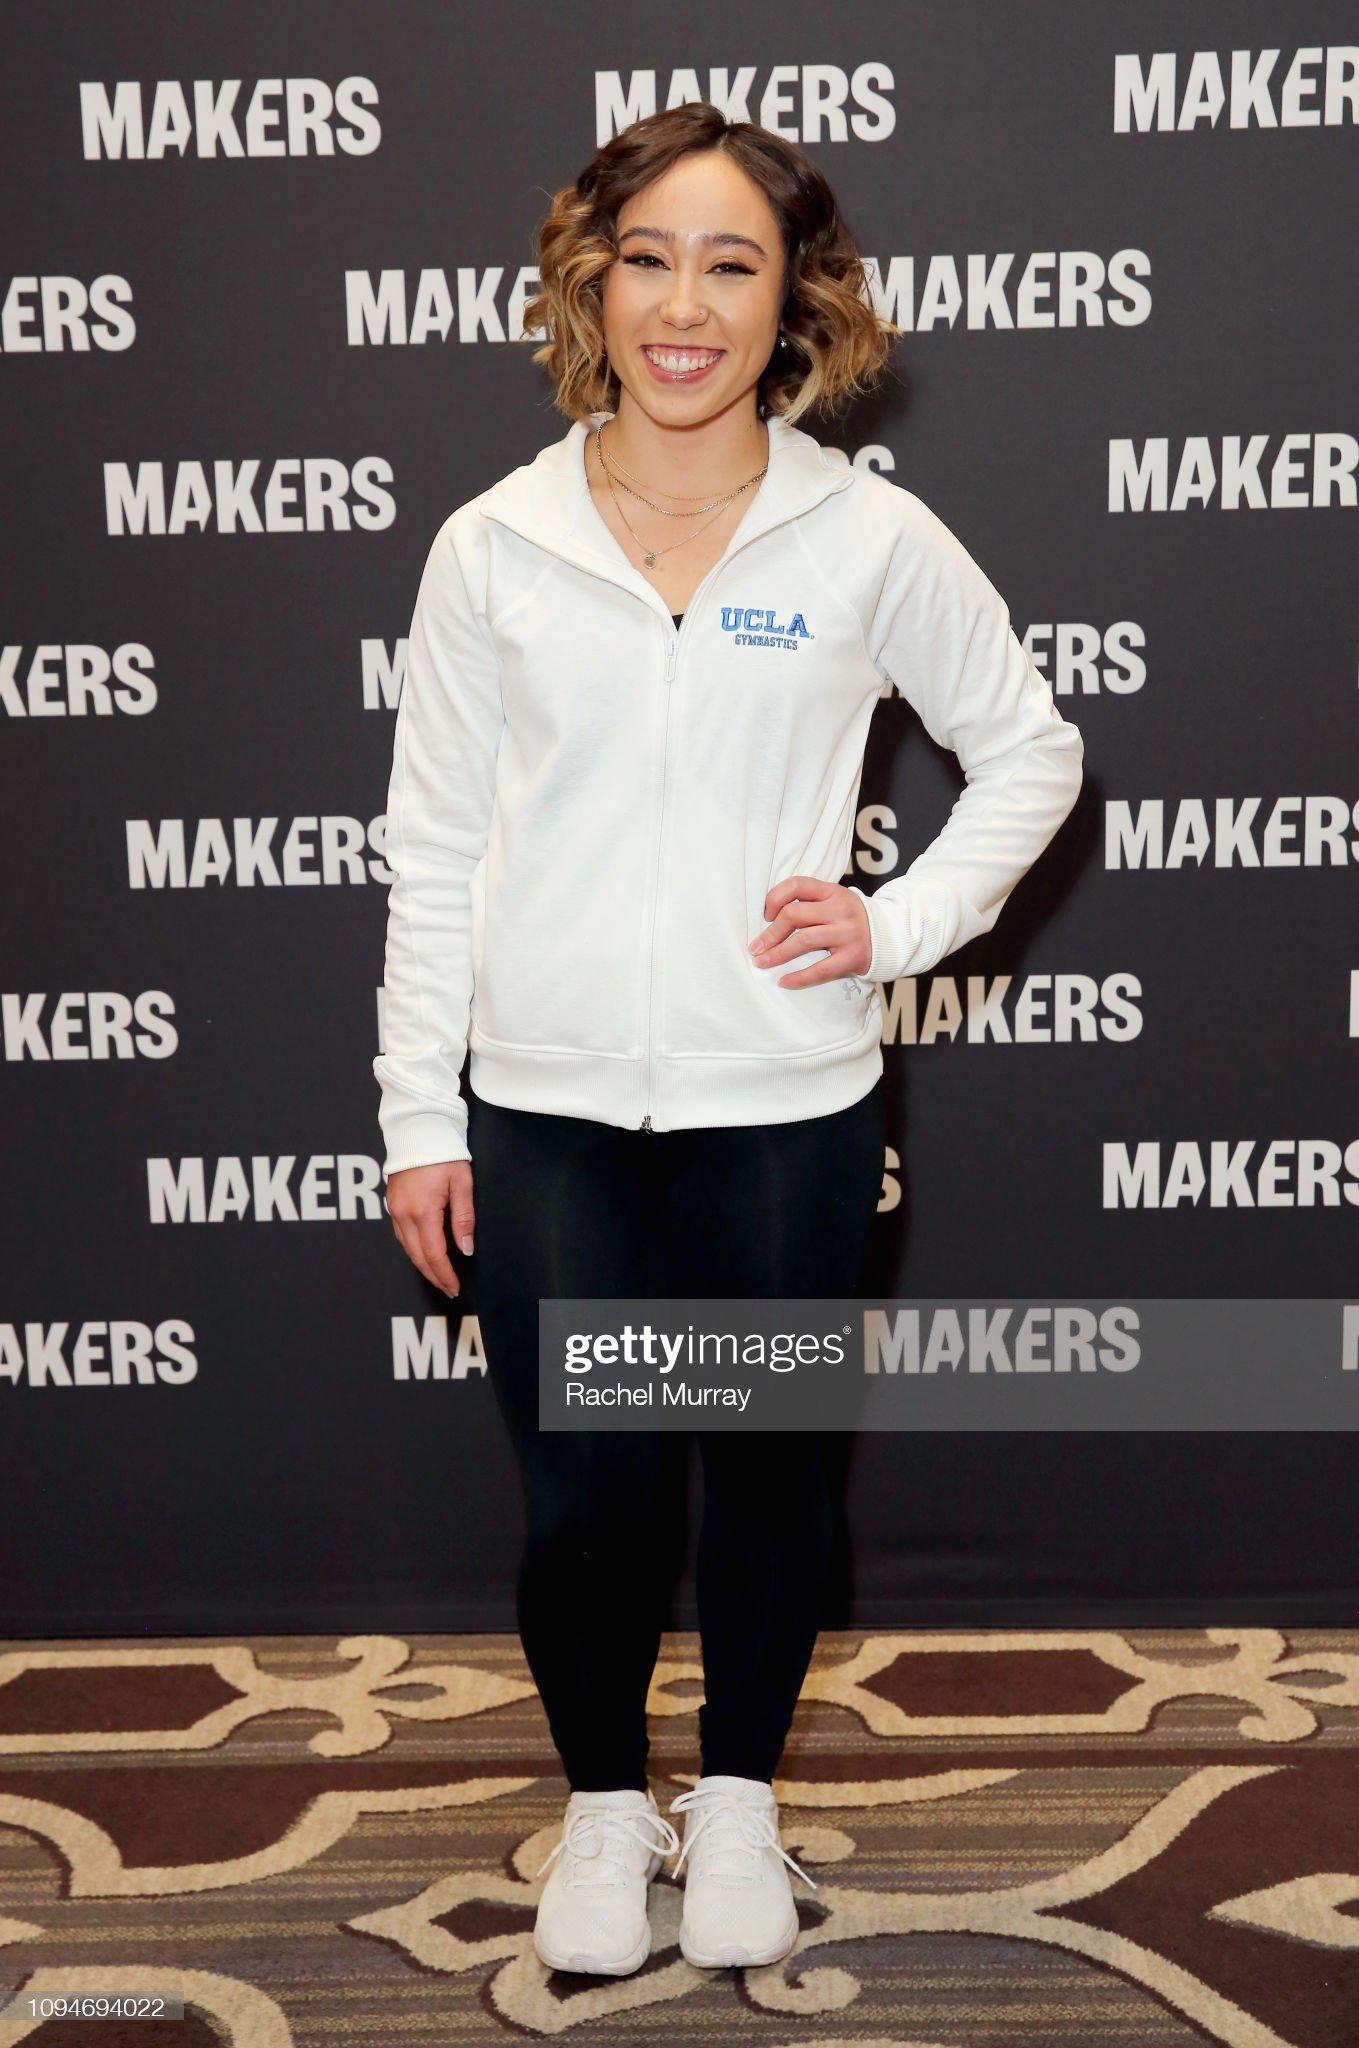 ¿Cuánto mide Katelyn Ohashi? - Real height Katelyn-ohashi-attends-the-2019-makers-conference-at-monarch-beach-picture-id1094694022?s=2048x2048